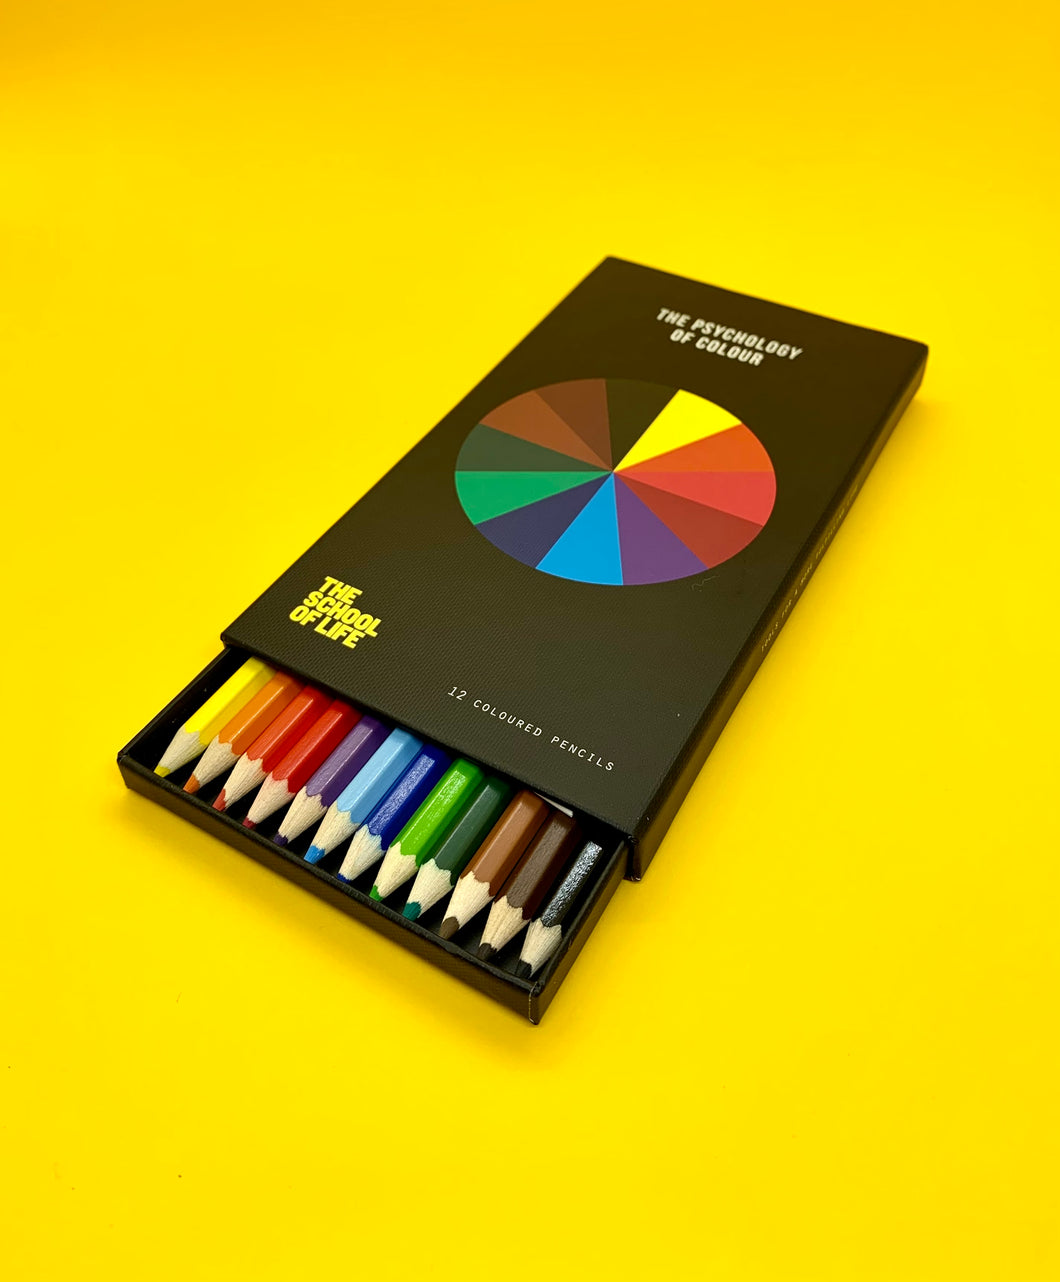 The Harley Gallery Shop Online // The Psychology of Colour boxed set of pencils